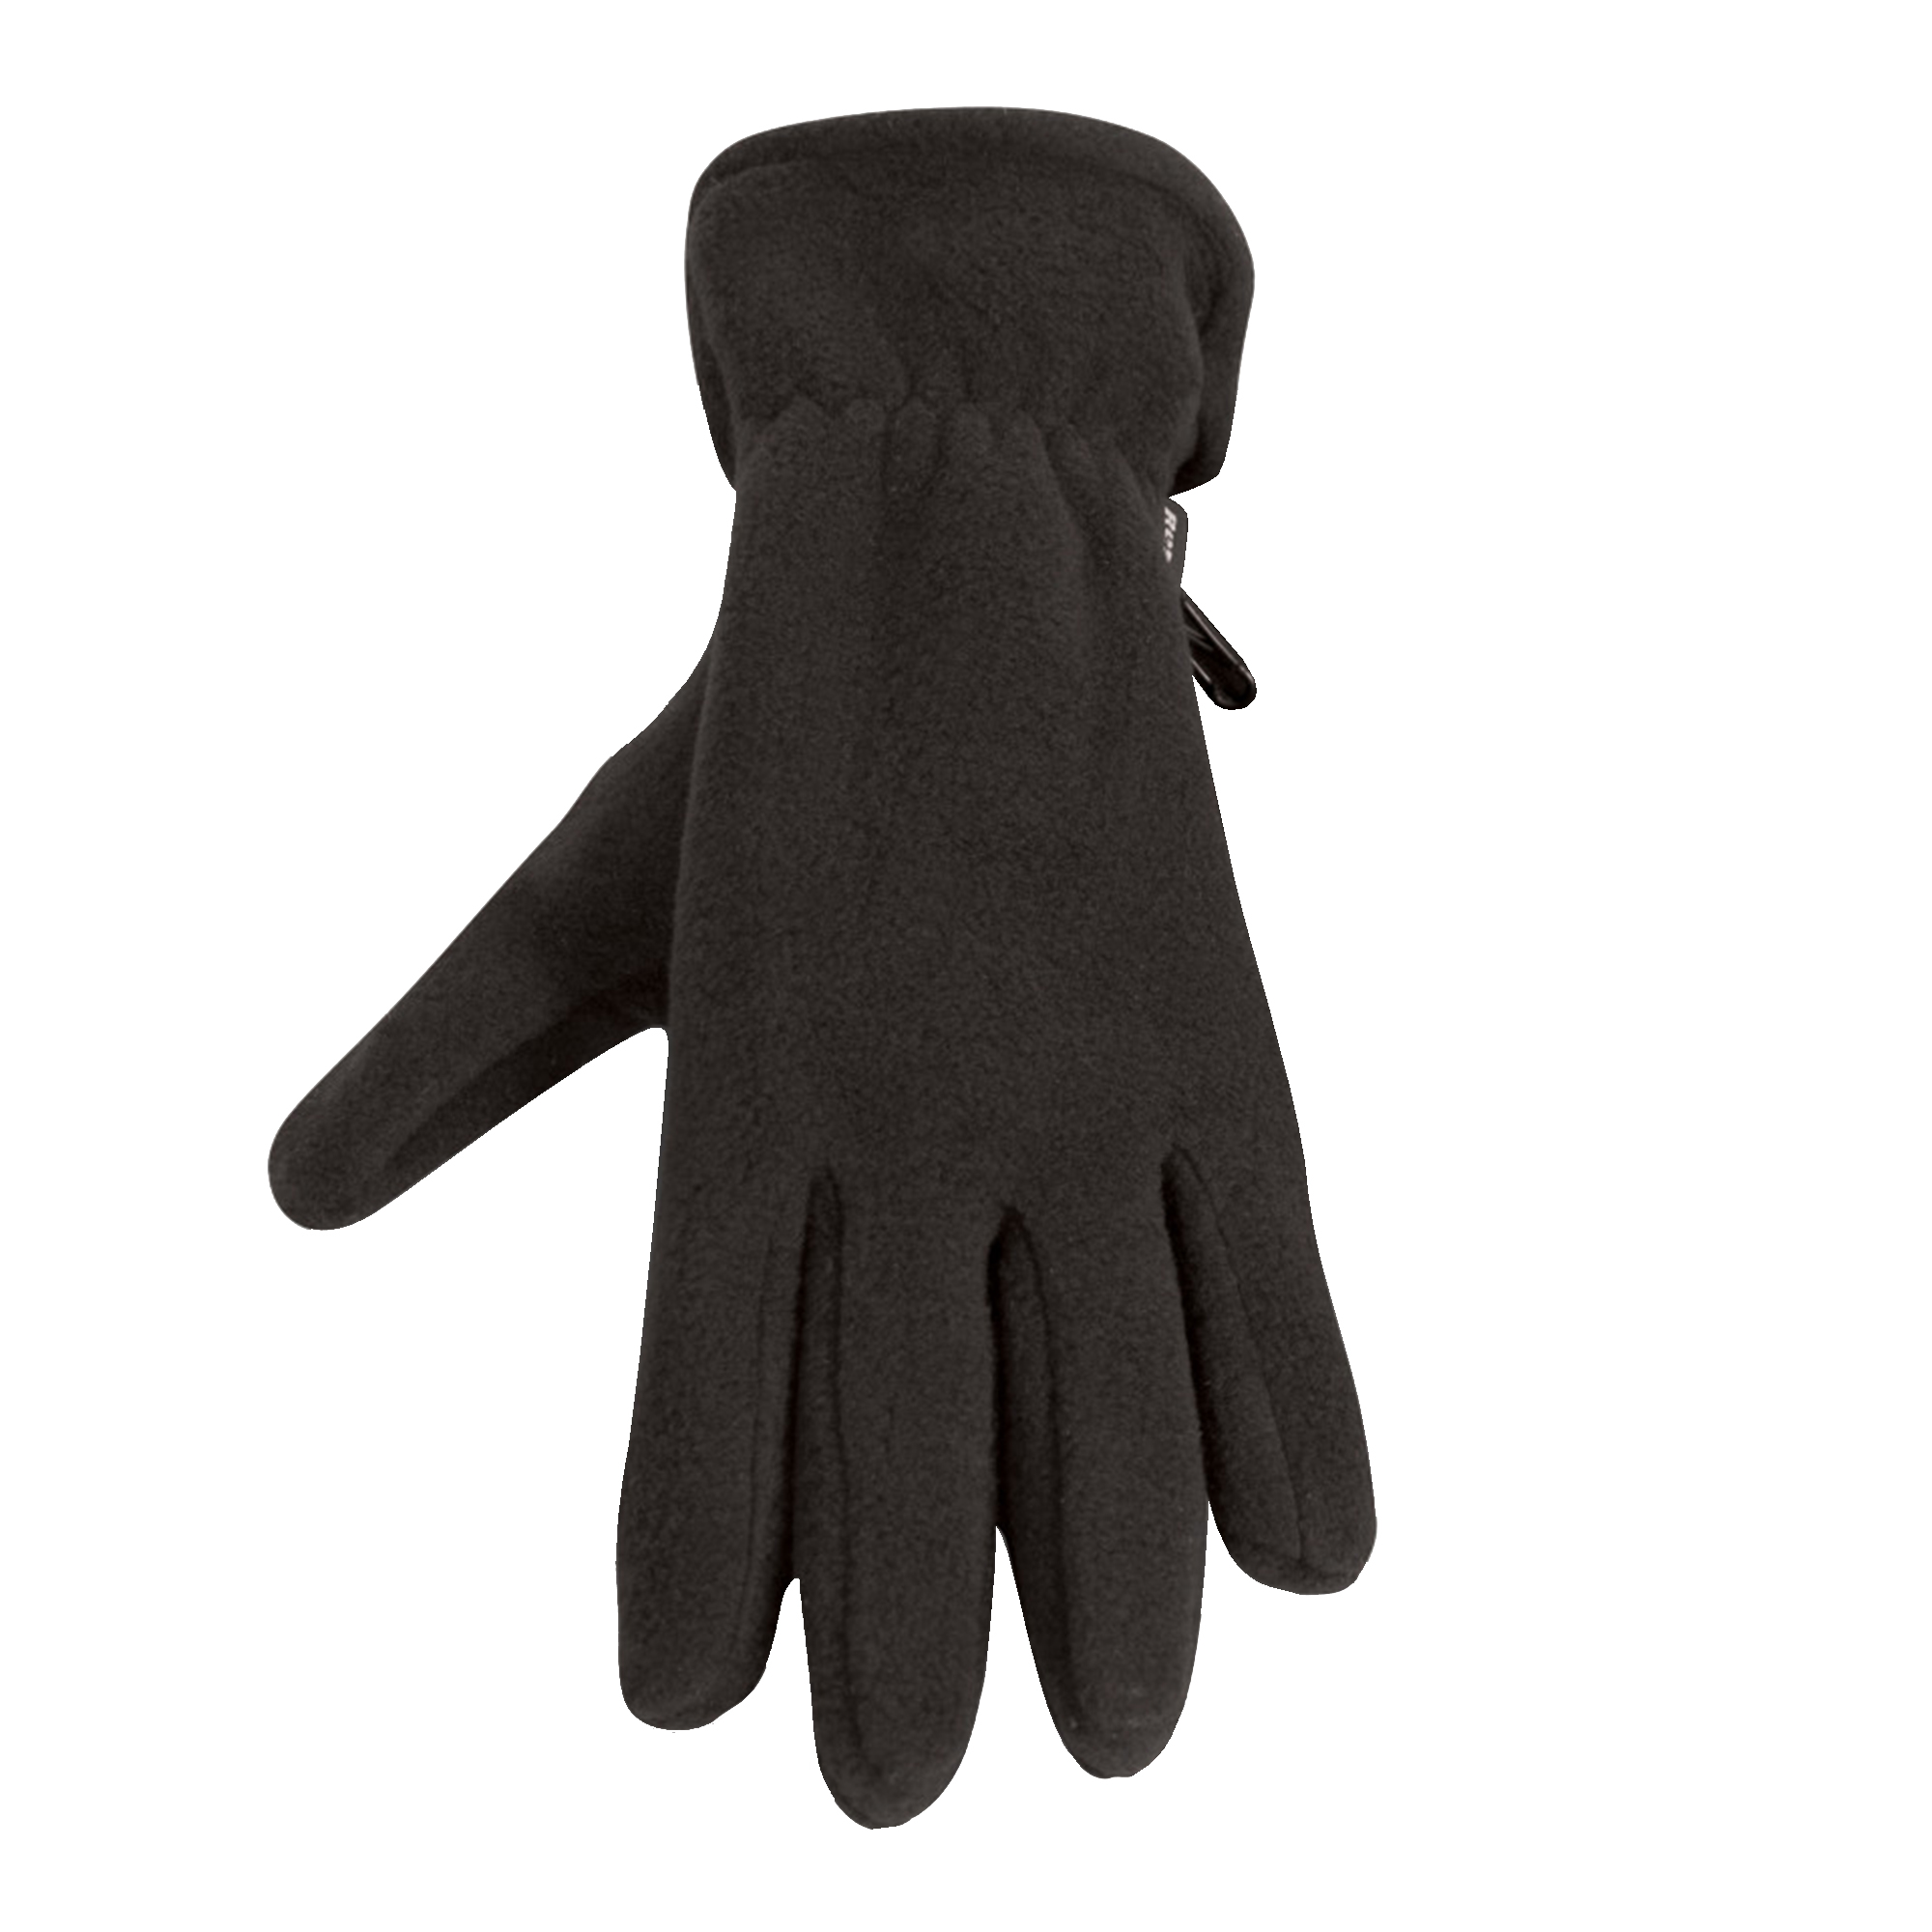 NEW $180 ISOTONER Men/'s Leather Gloves Black SMARTOUCH TOUCHSCREEN WINTER Size M